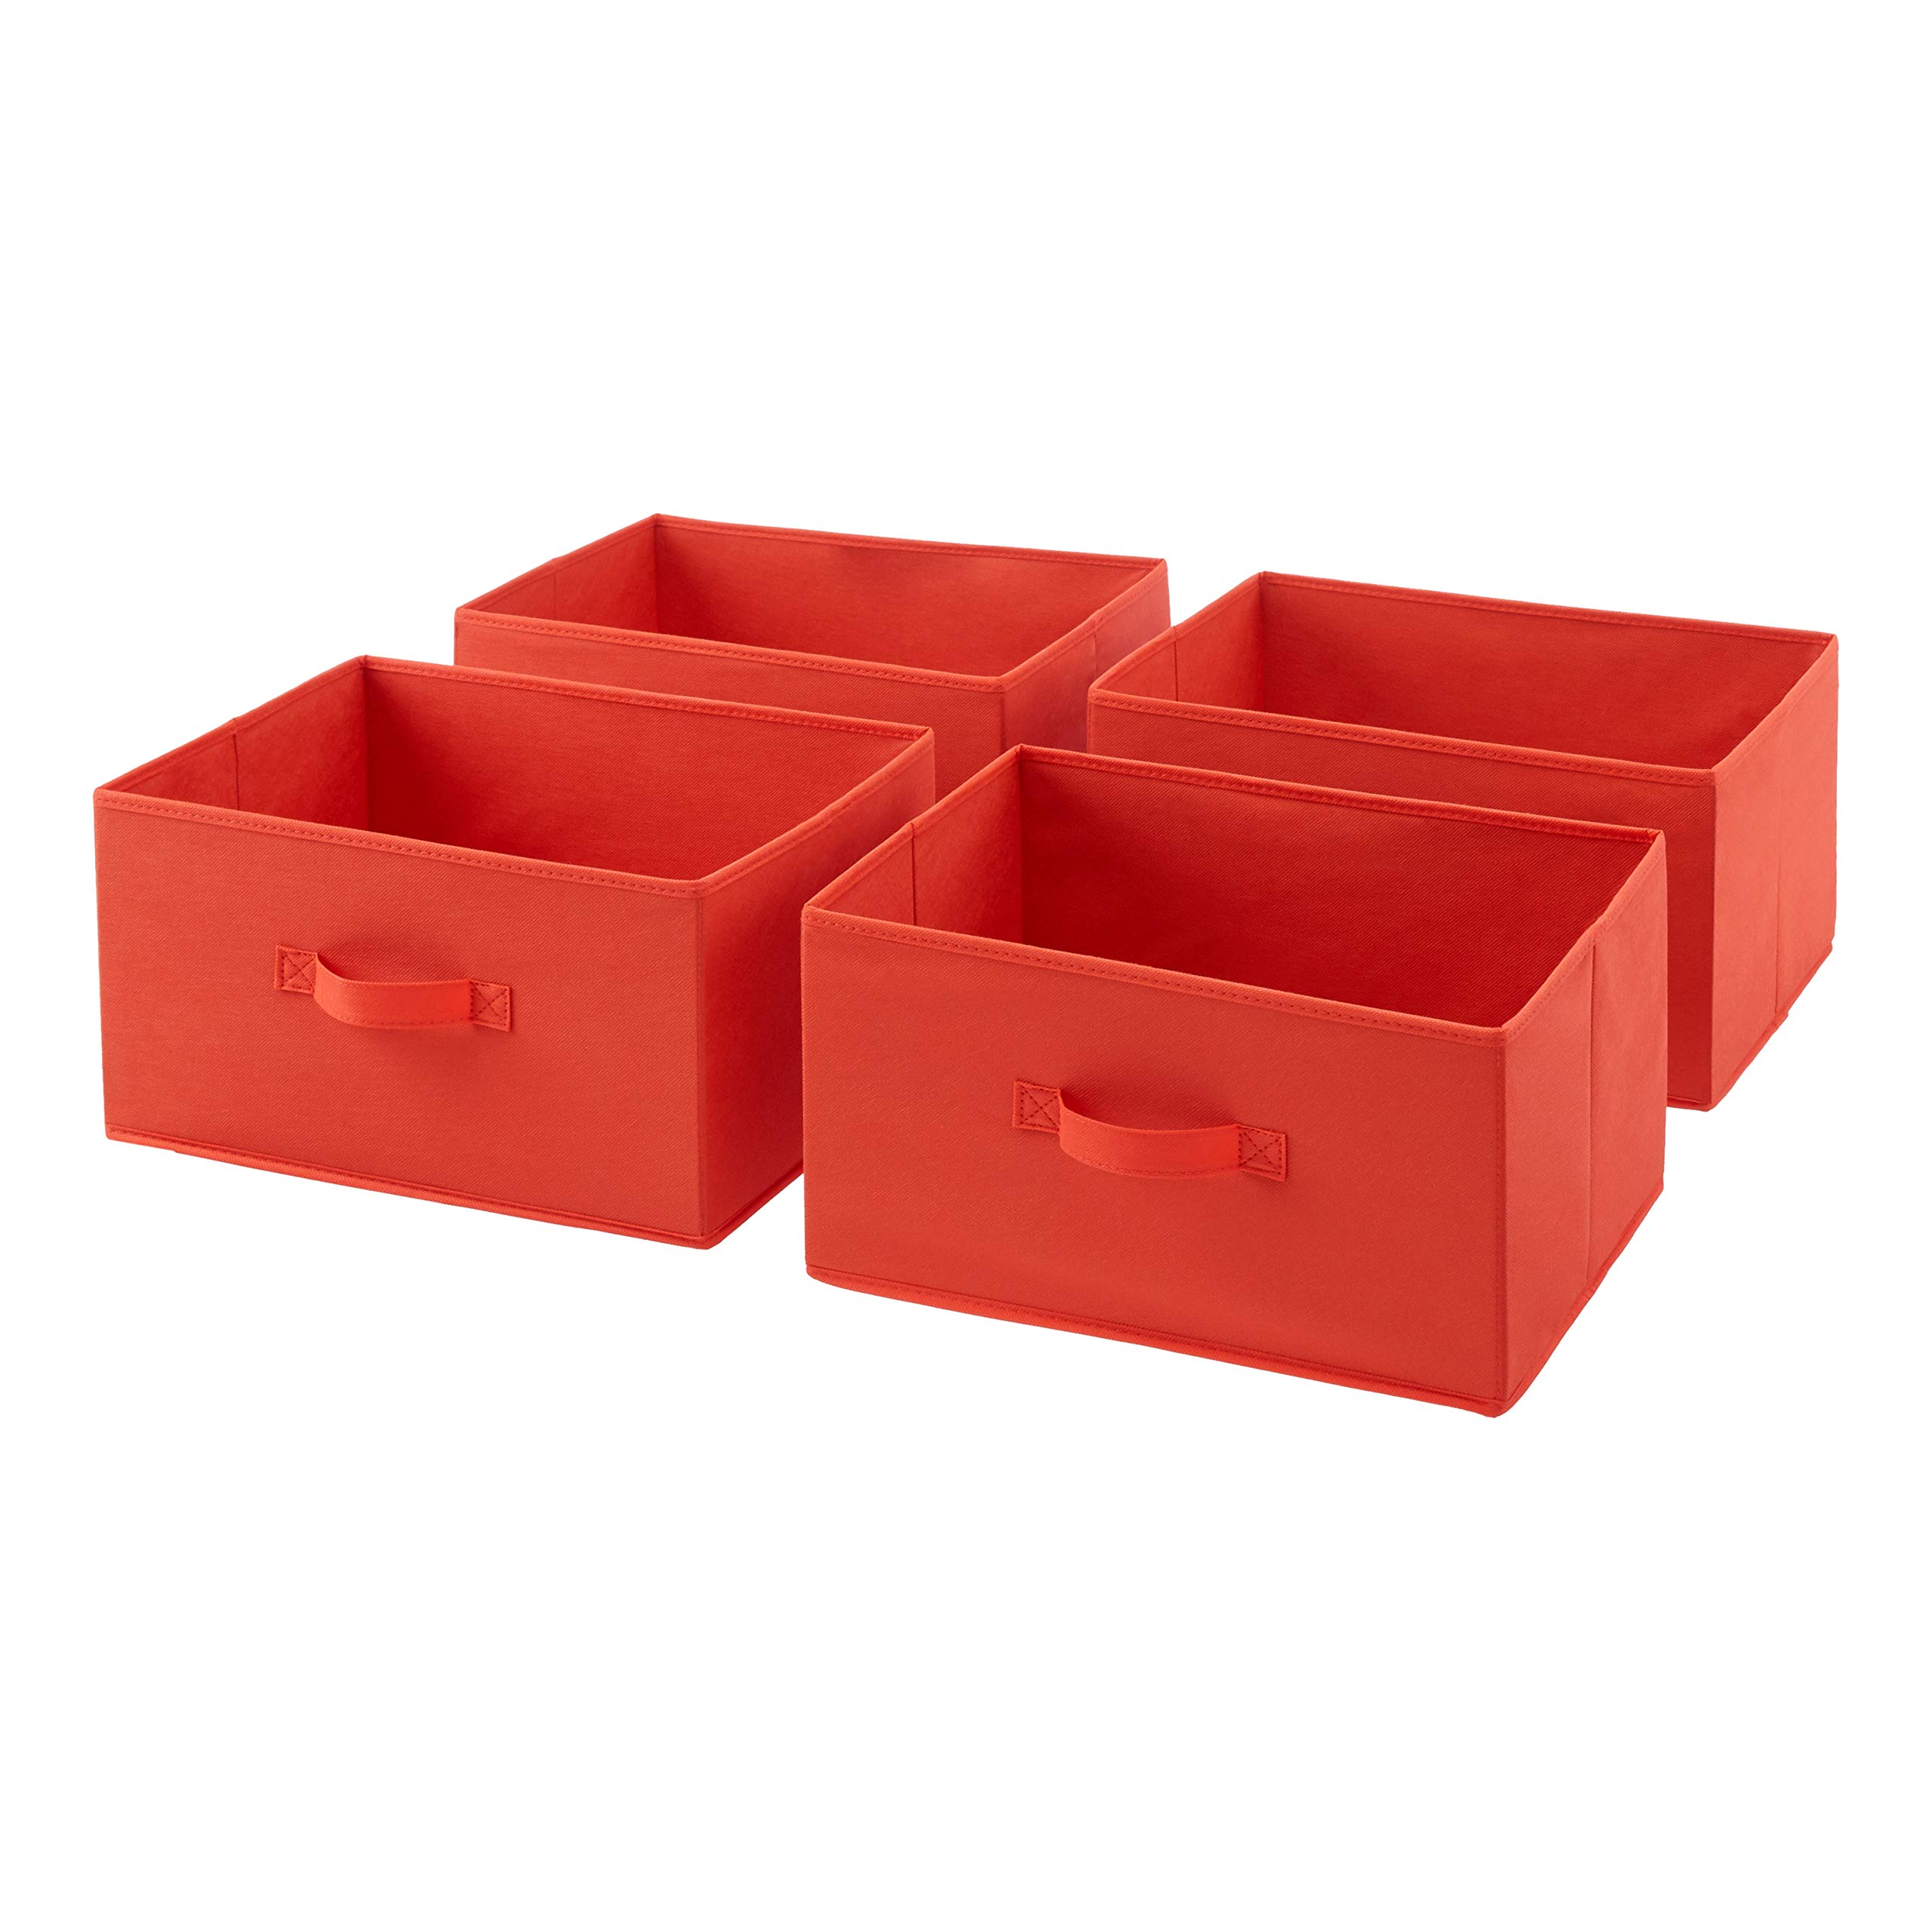 AmazonBasics Fabric 4-Drawer Storage Organizer - Replacement Drawers, Red